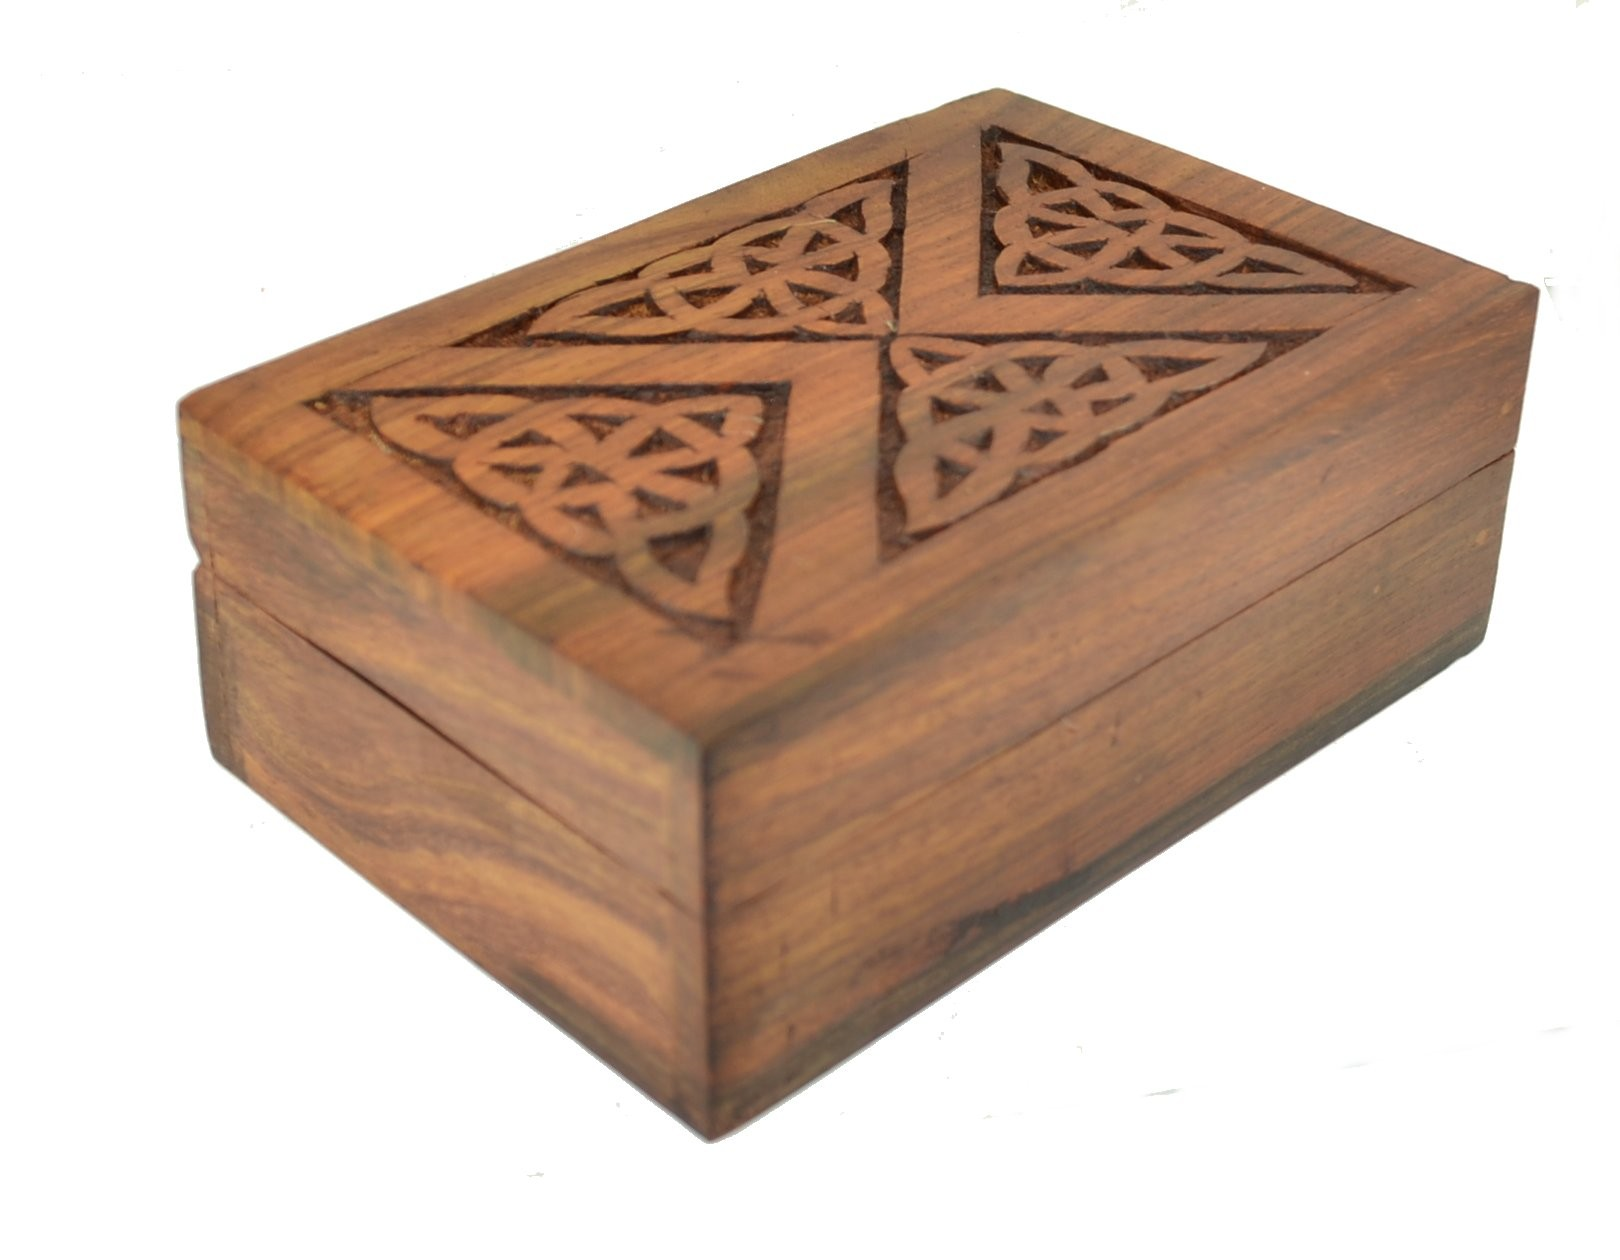 Wooden tarot card box decorative celtic triangle lid for Decorative tarot cards